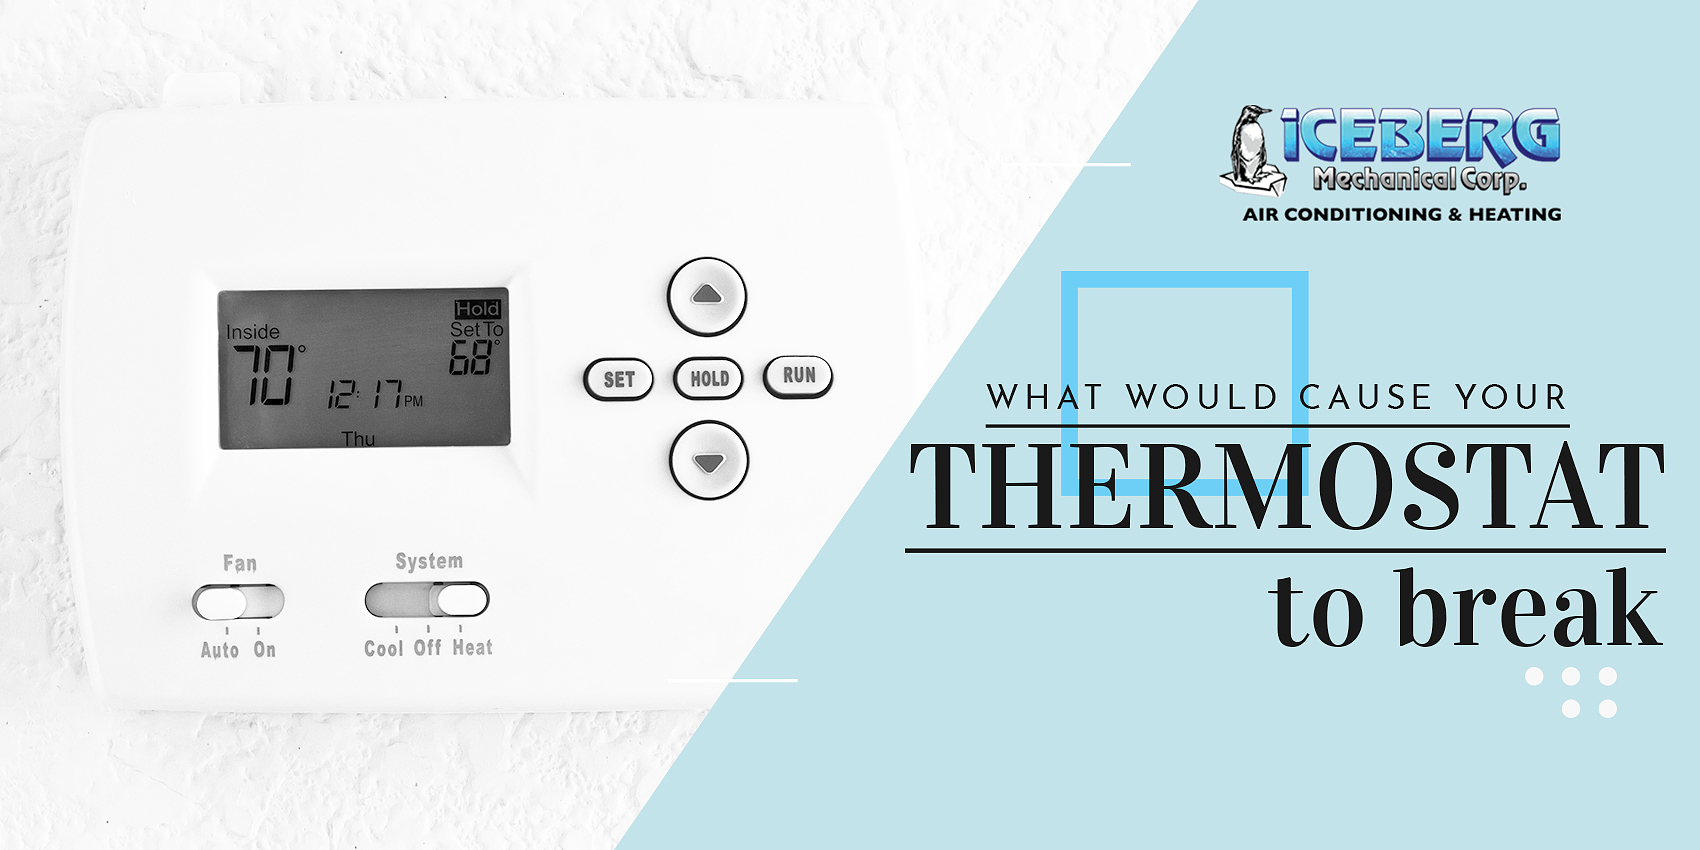 What Would Cause Your Thermostat To Break?